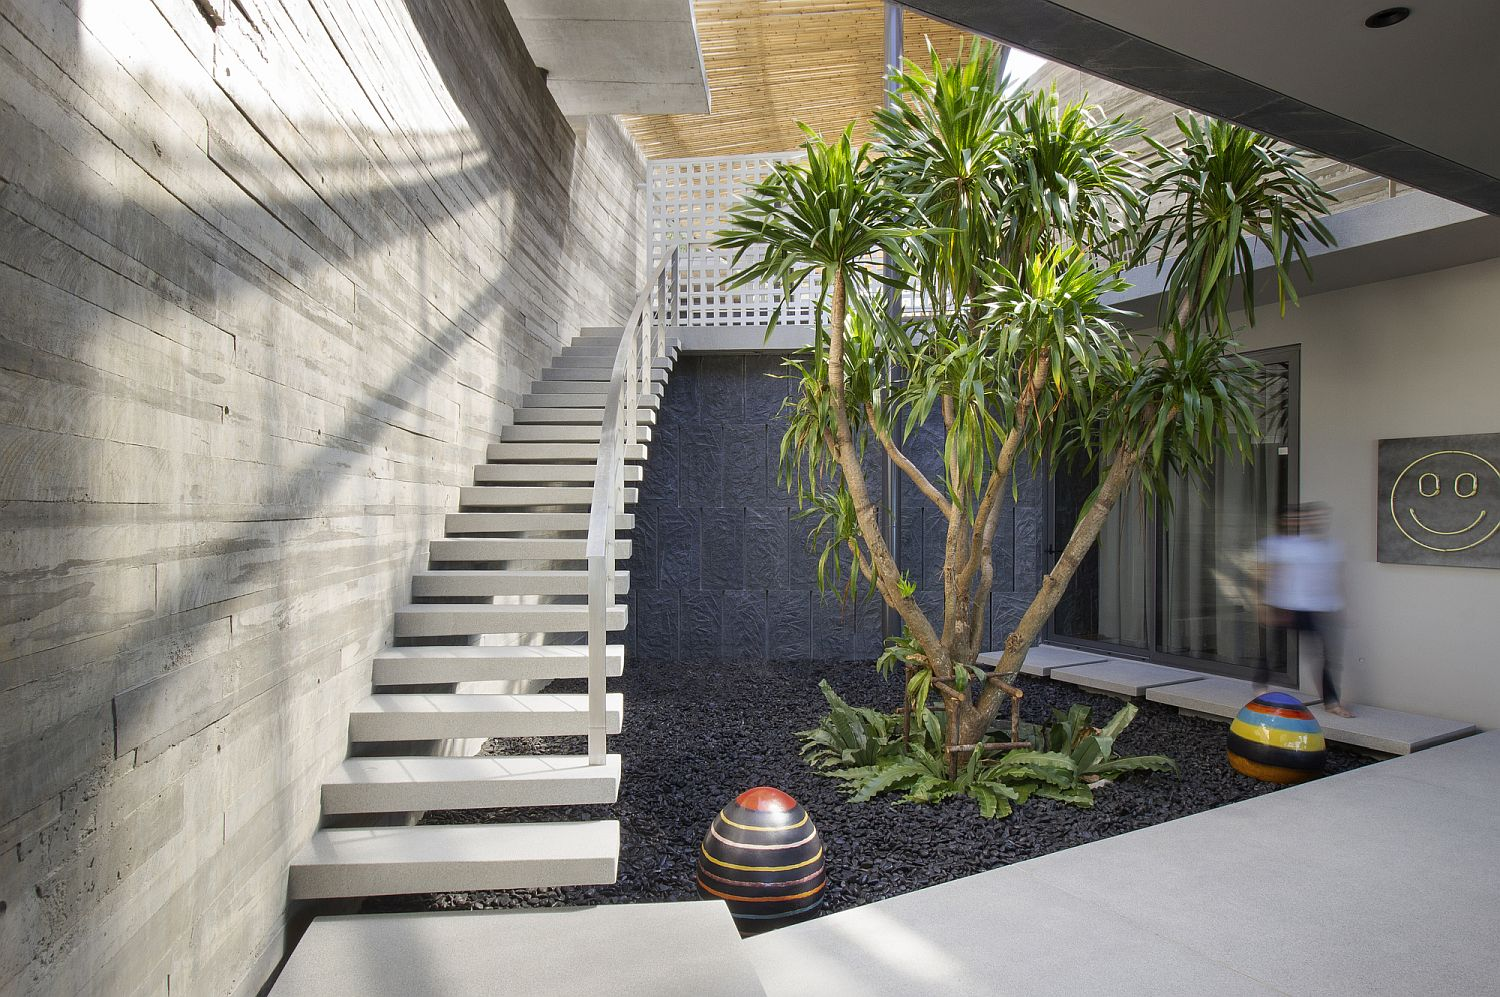 Staircase leading to the living areas and courtyard on the lower level